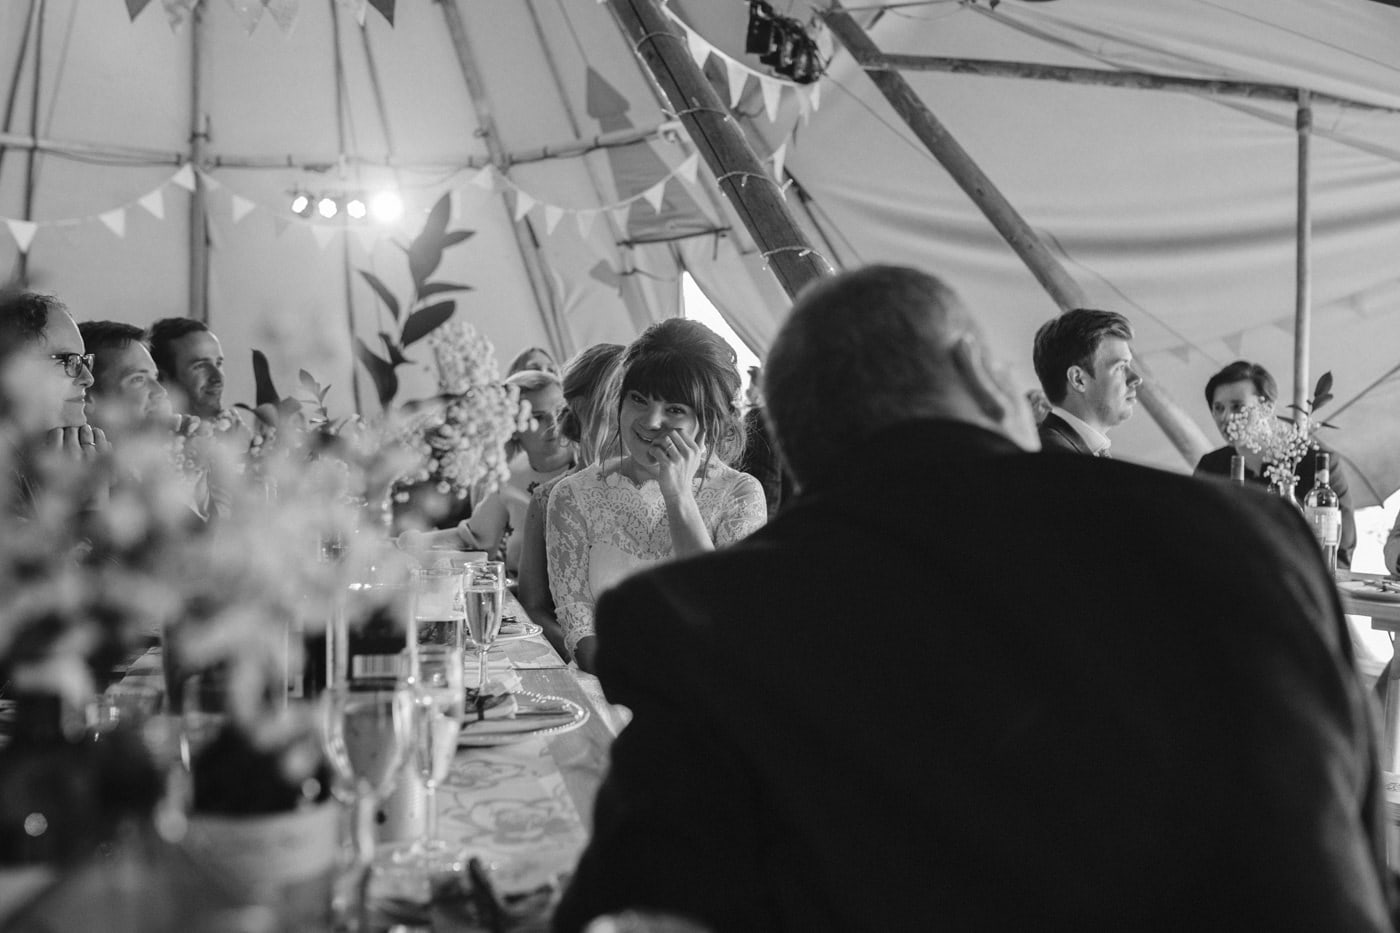 Portrait of Bride and Guests Under Tipi Tent Wedding Venue